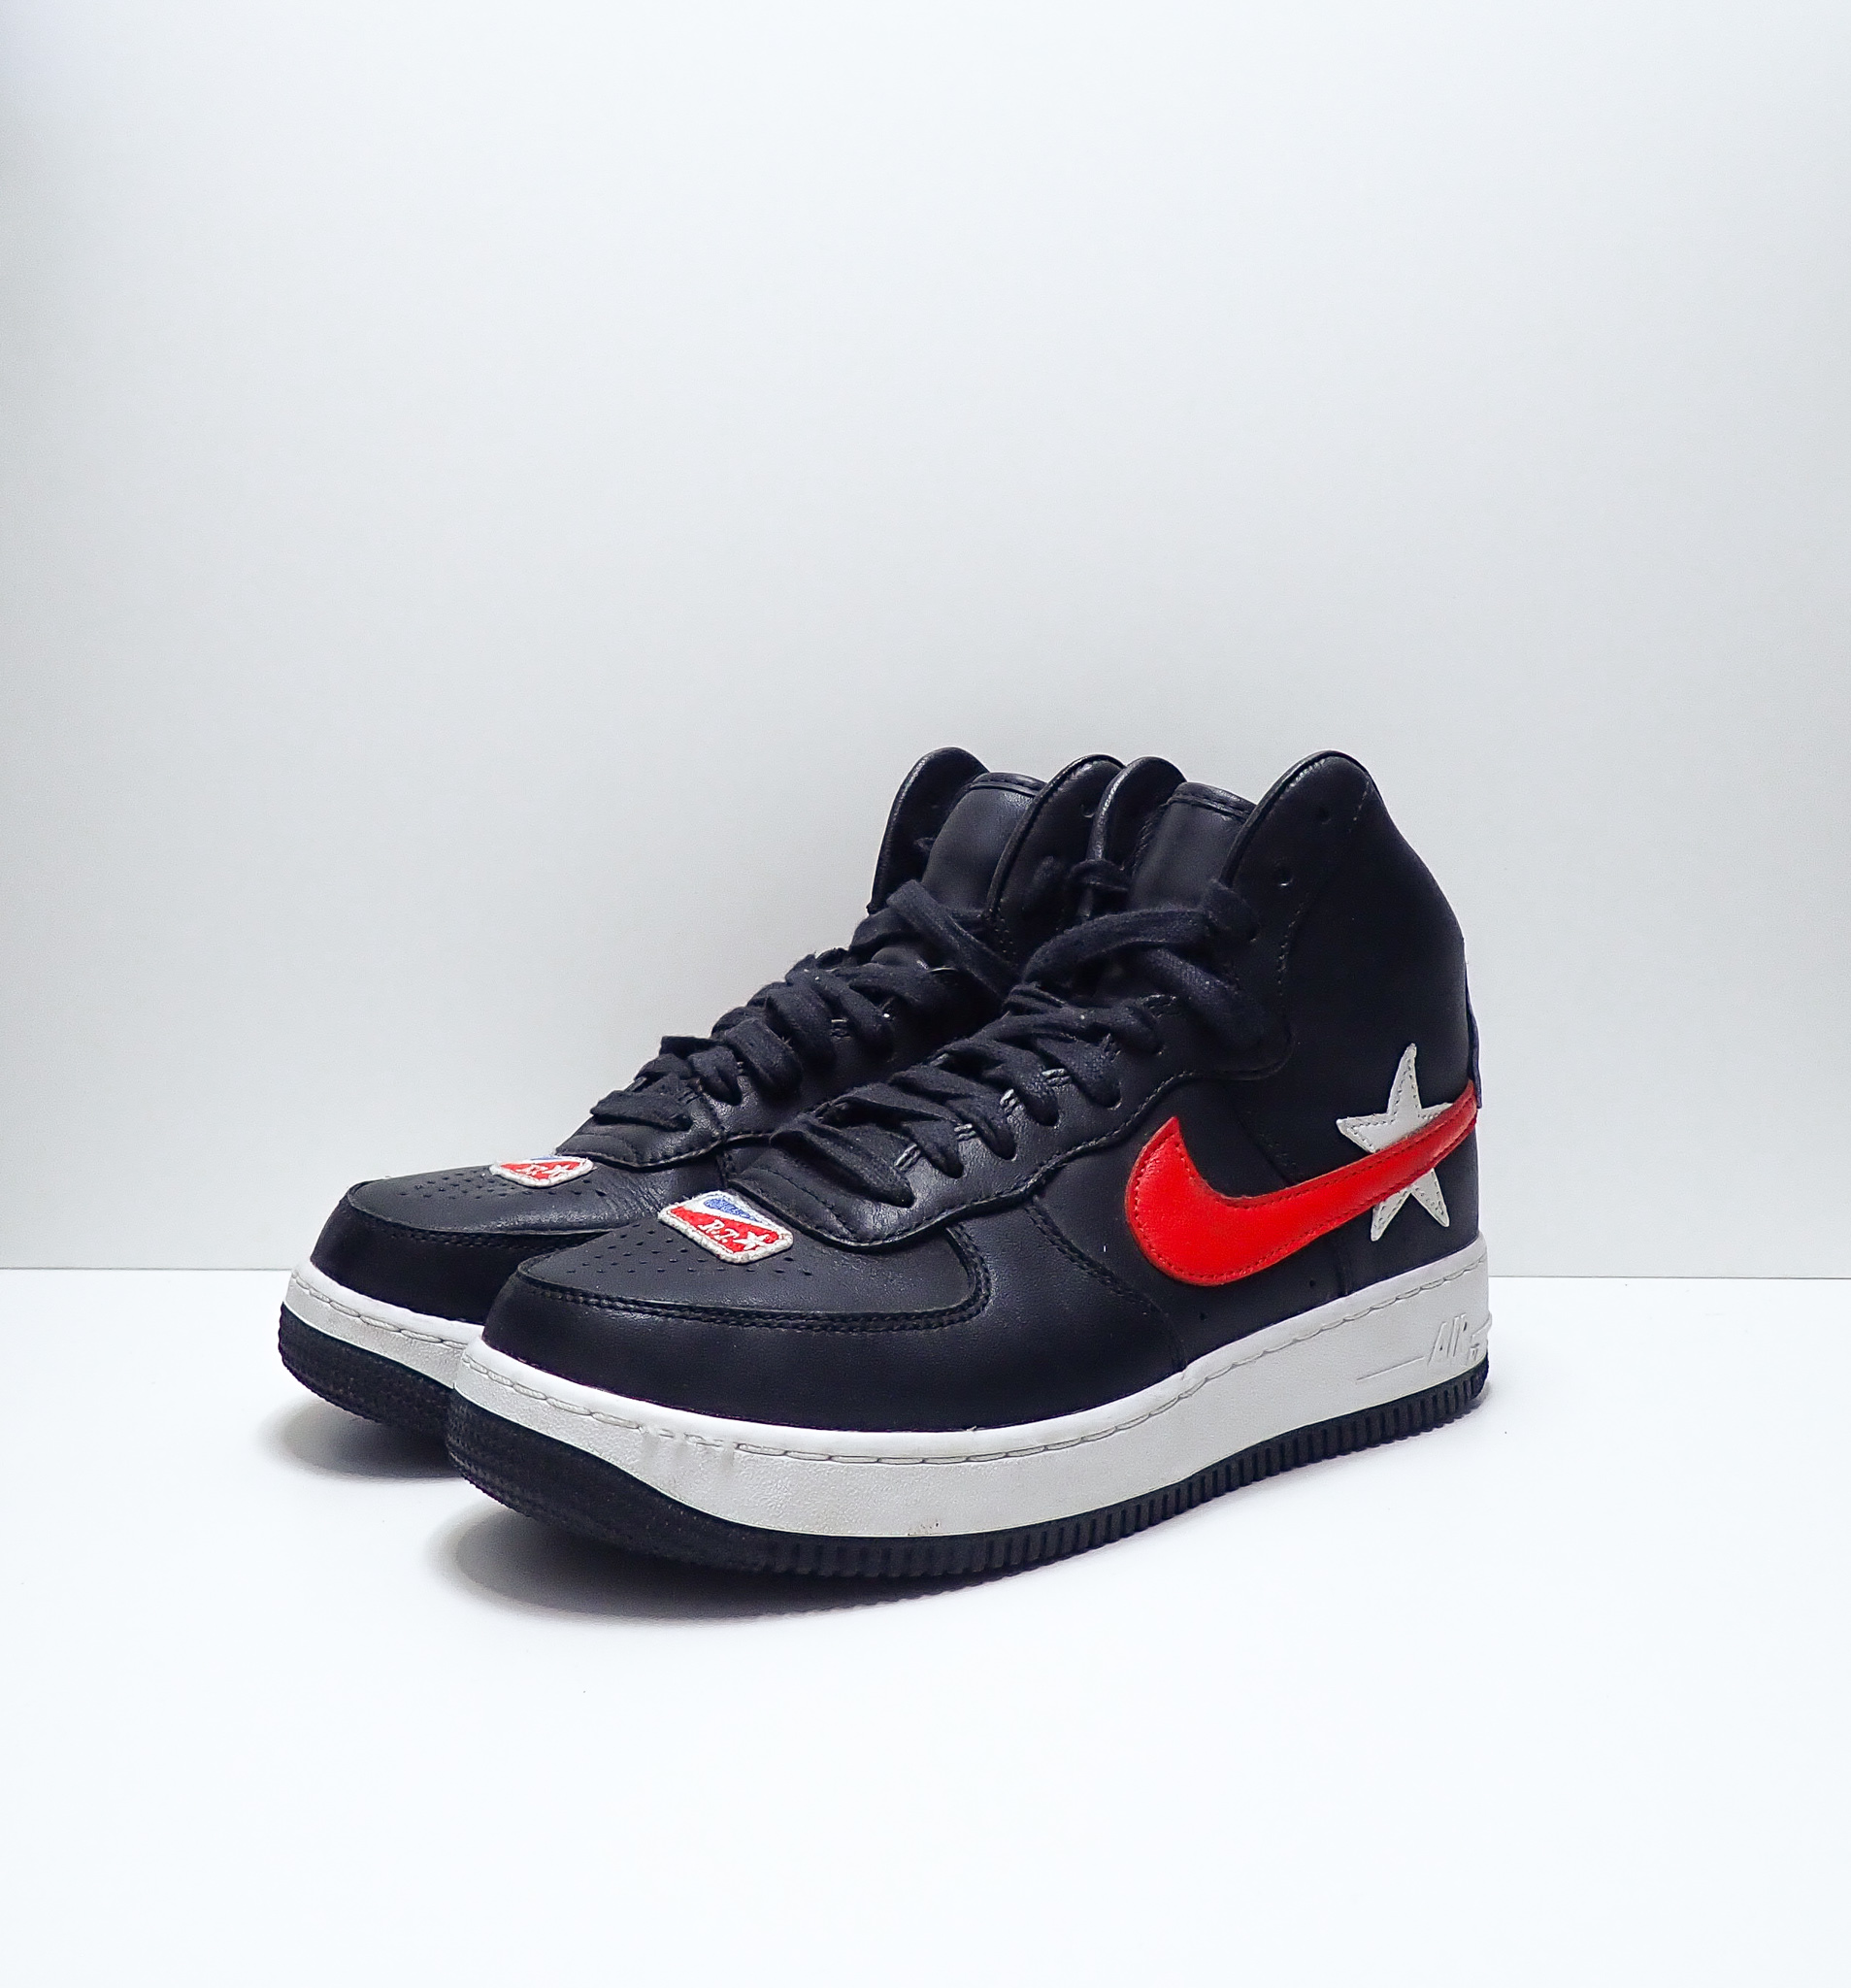 Nike Air Force 1 High Riccardo Tisci Victorious Minotaurs Black